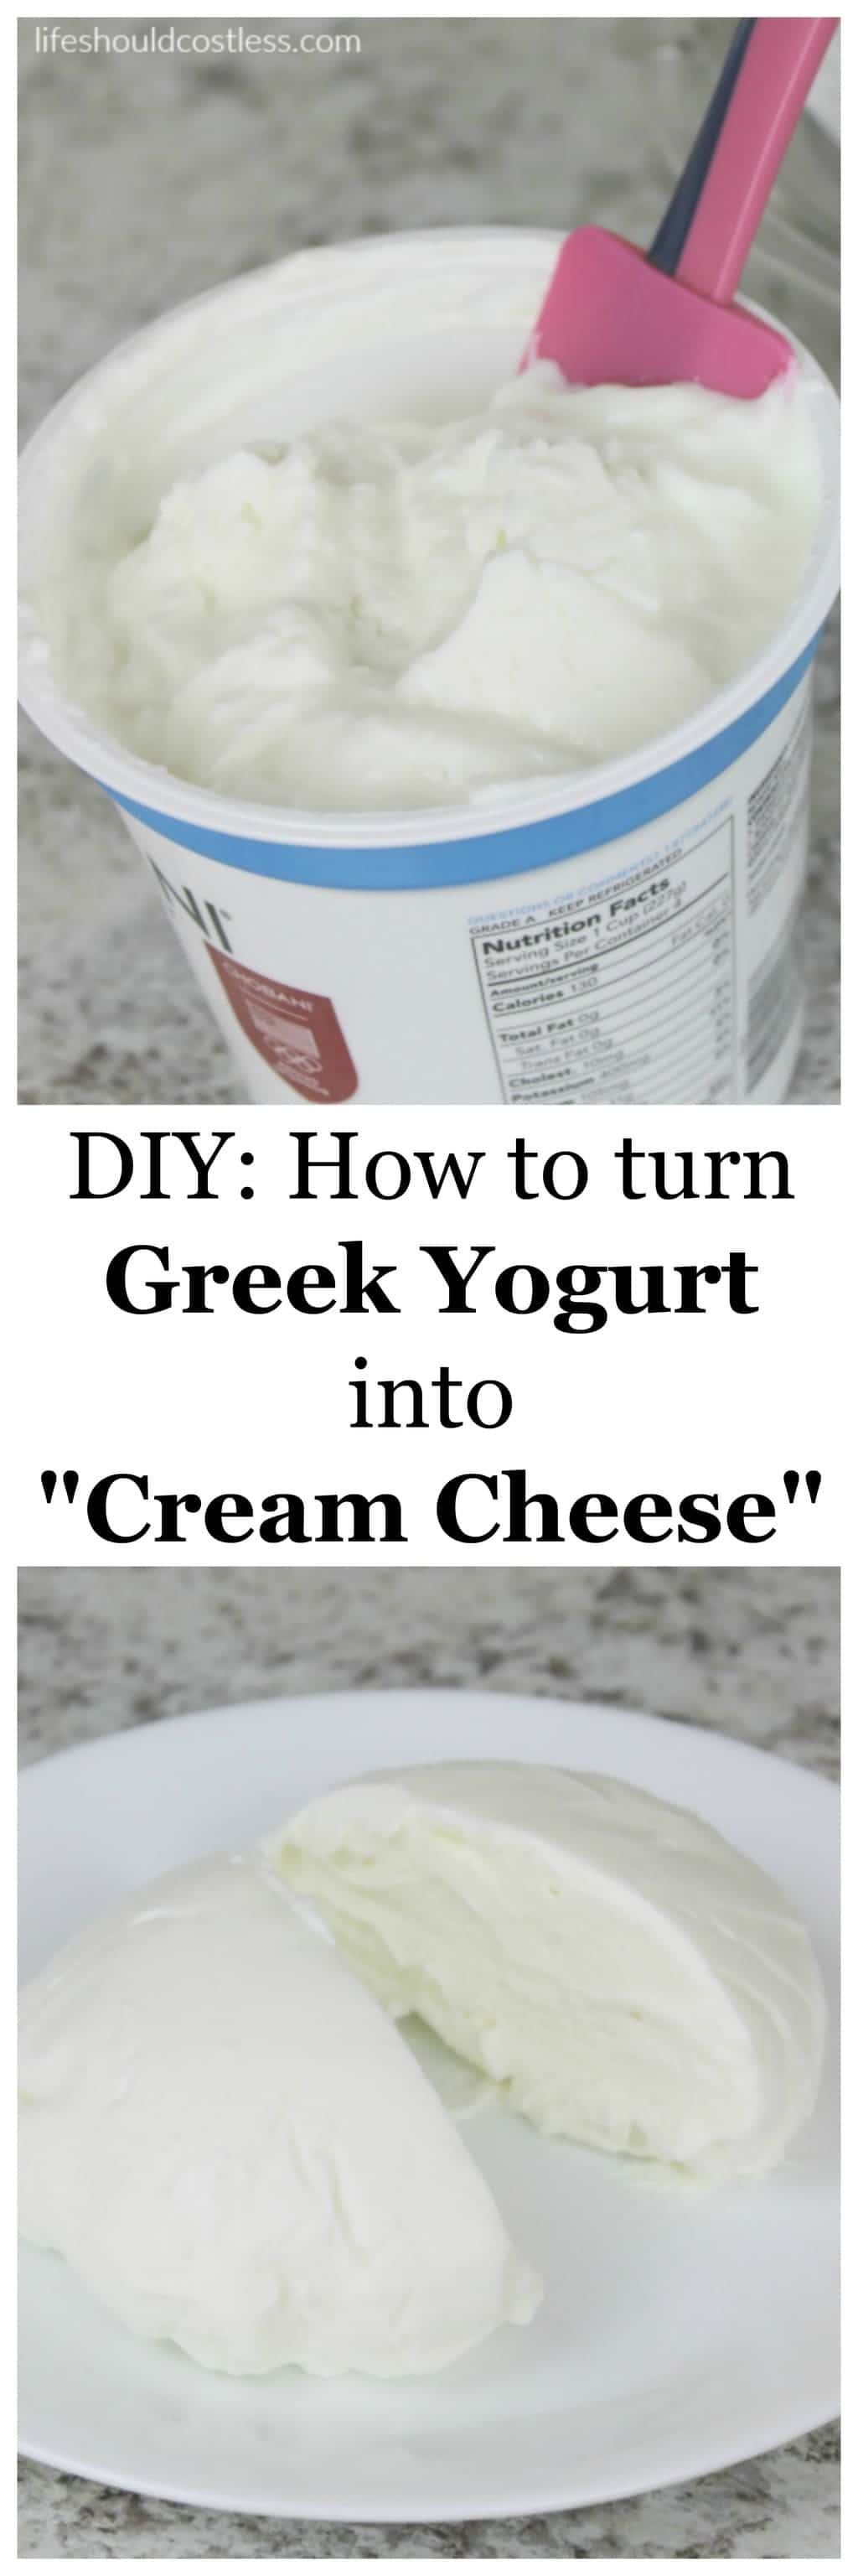 how to turn milk into cream